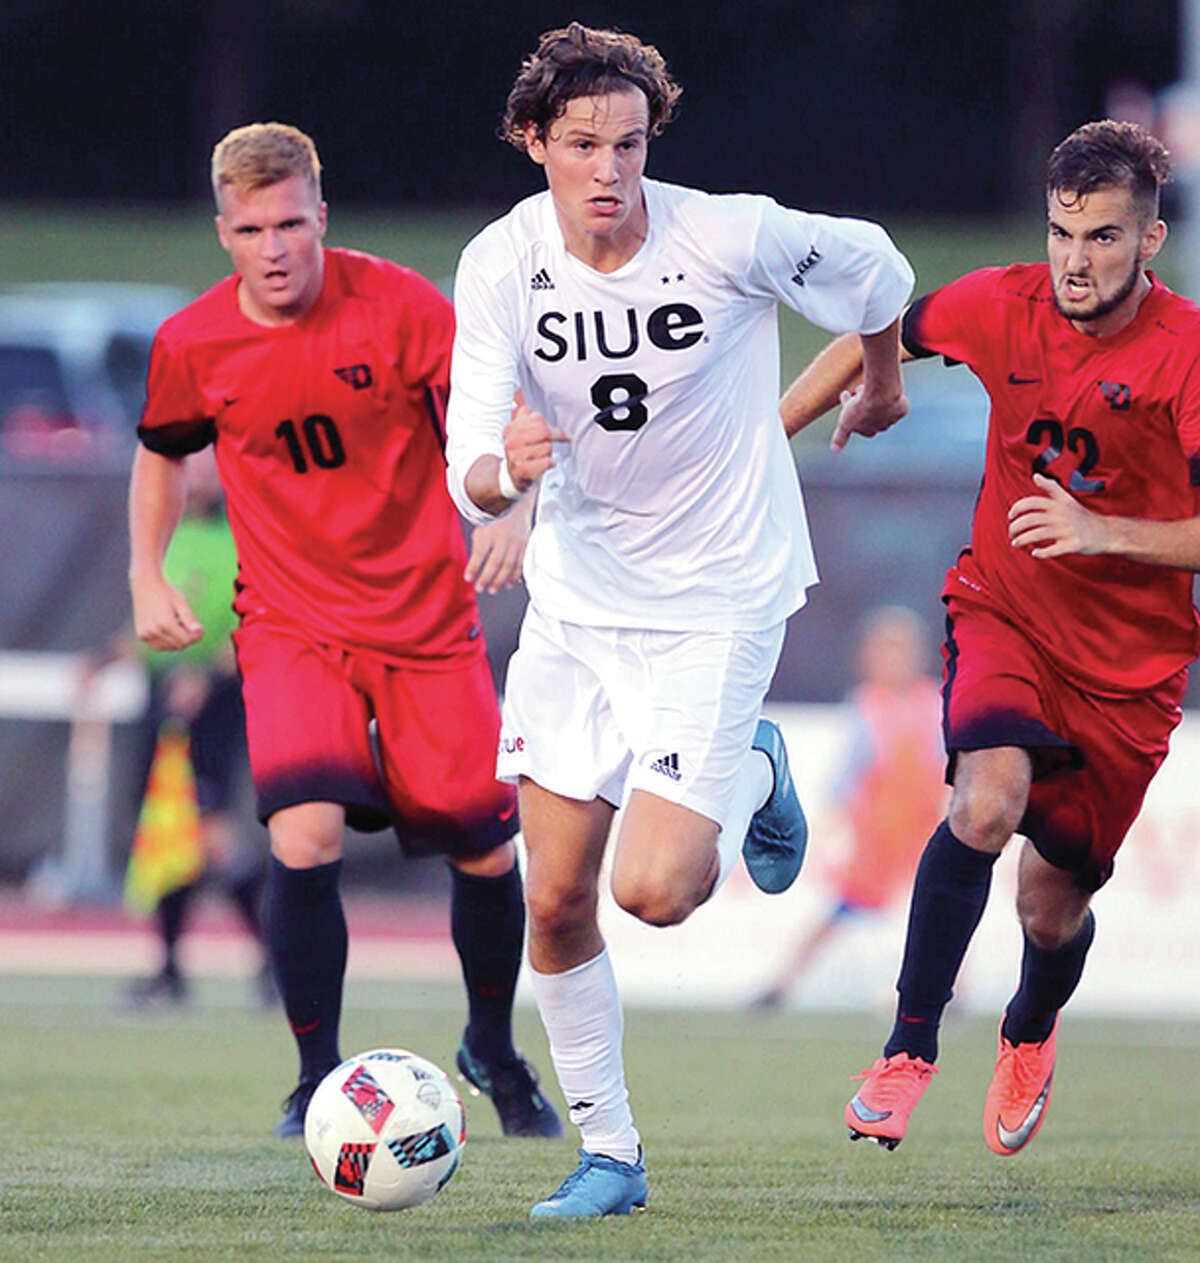 SIUE's Mathias Ebbesen (8) scored his first goal of the season in the first half of Tuesday night's 3-0 win over IUPUI at Korte Stadium.